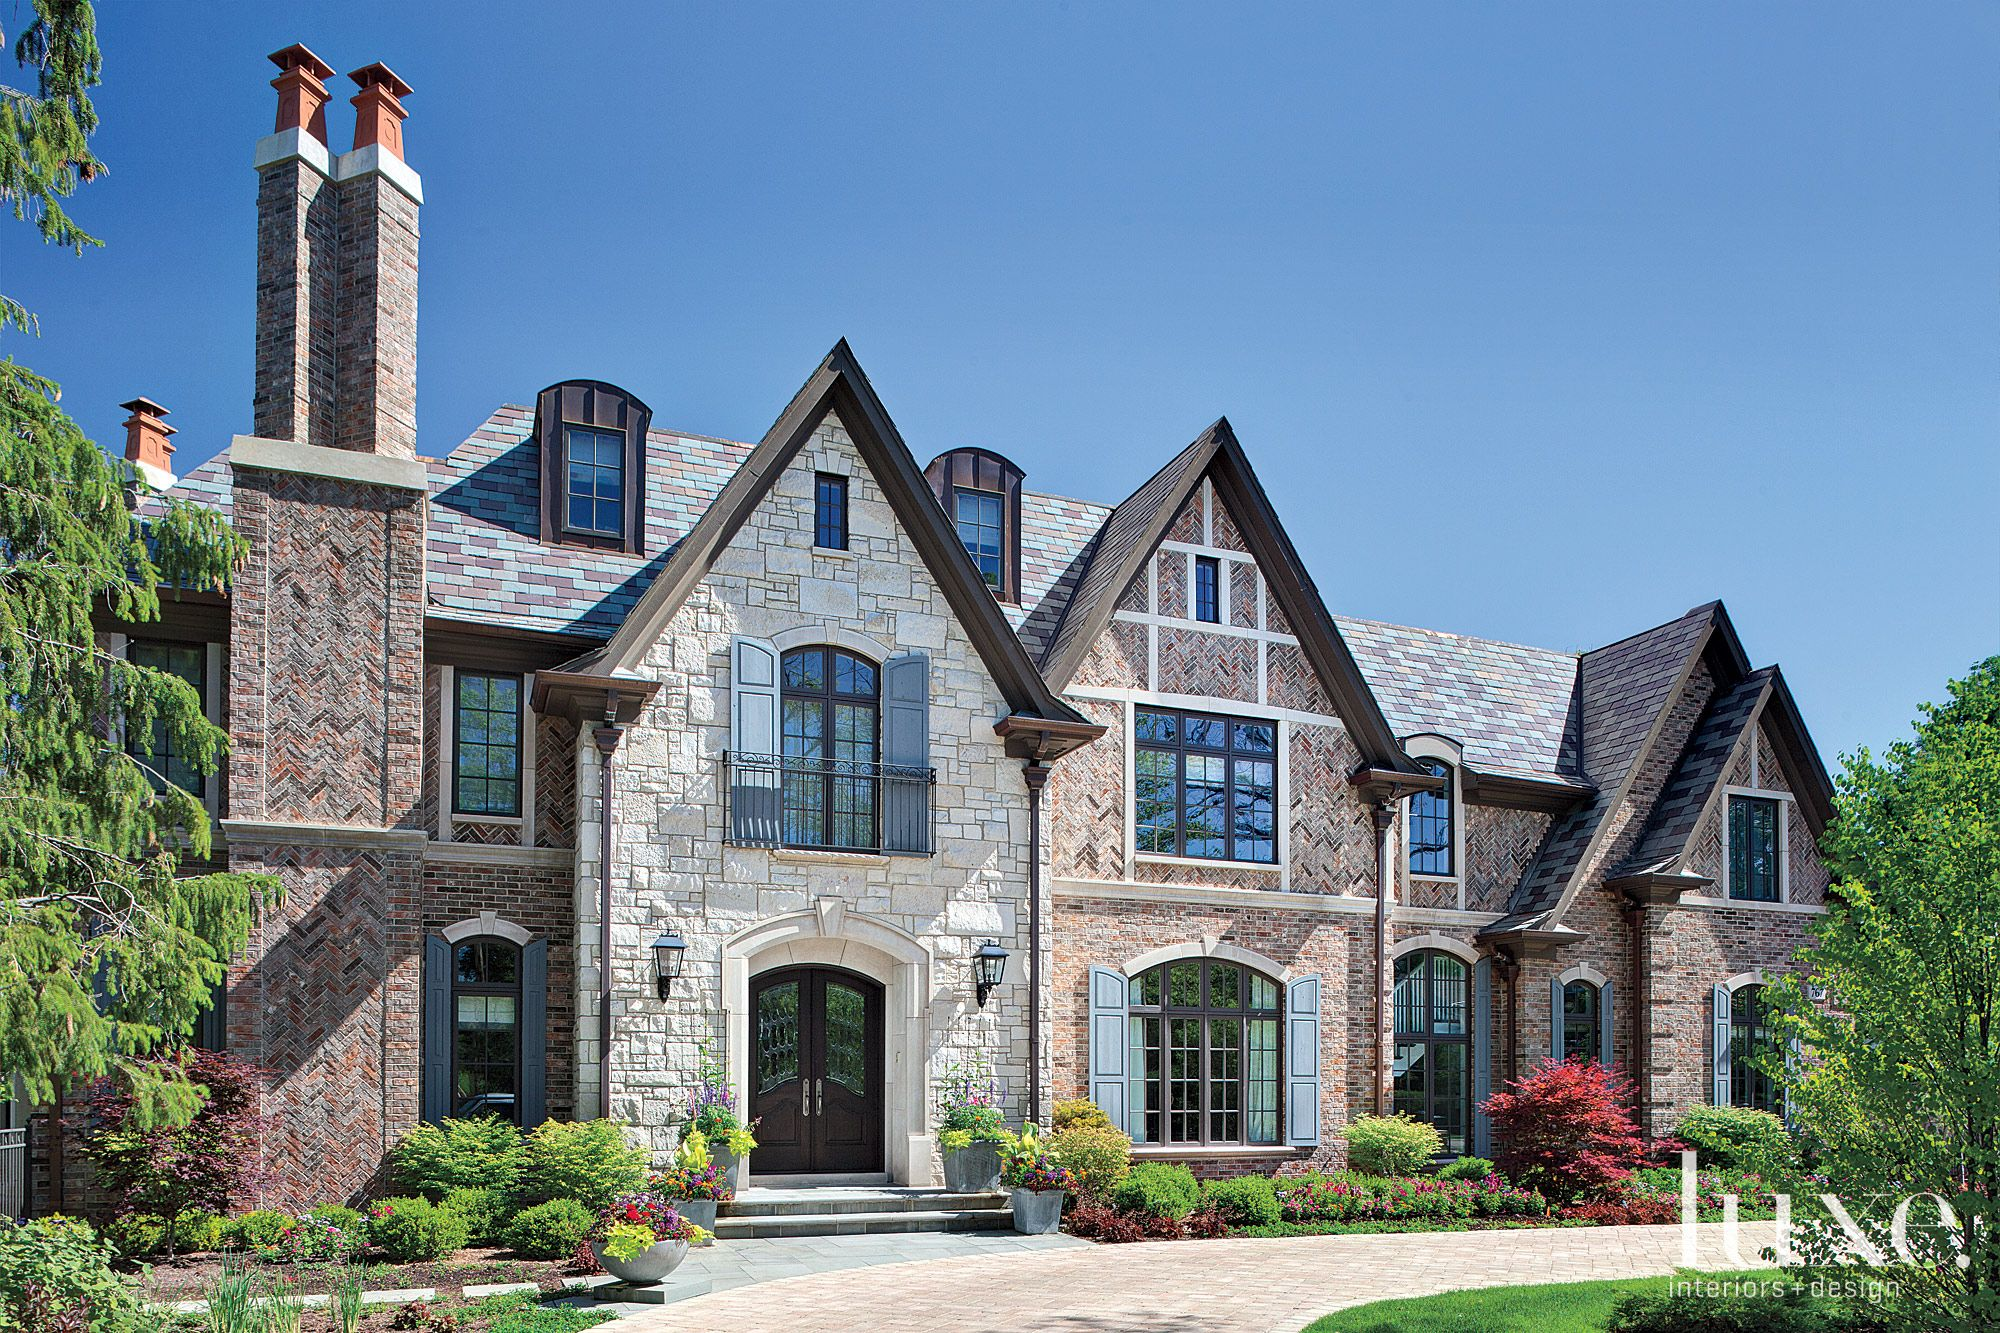 Contemporary Stone Tudor Facade with Potted Plants